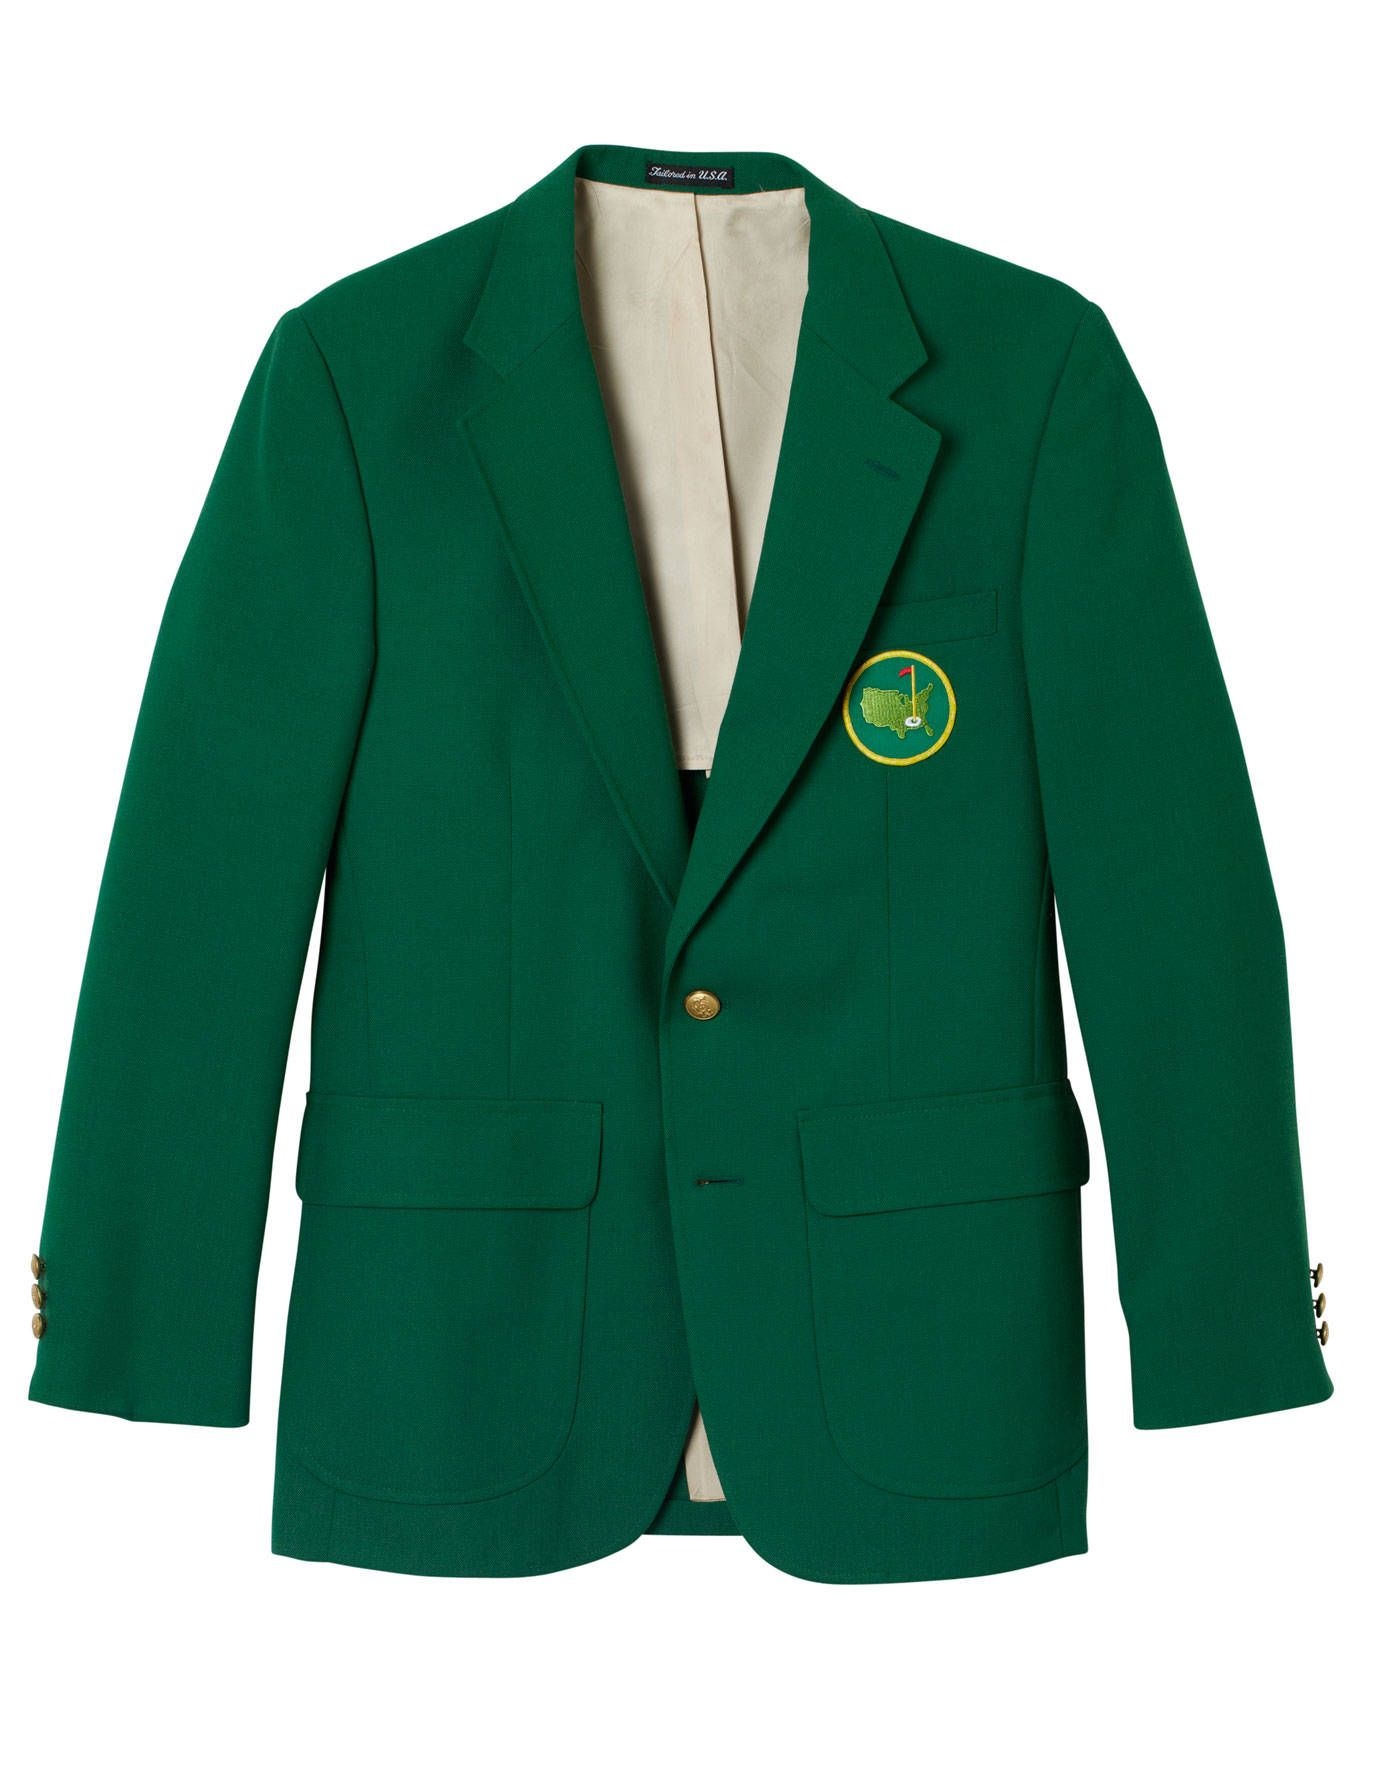 Augusta National Golf Club Memorabilia Photos - Augusta National ...